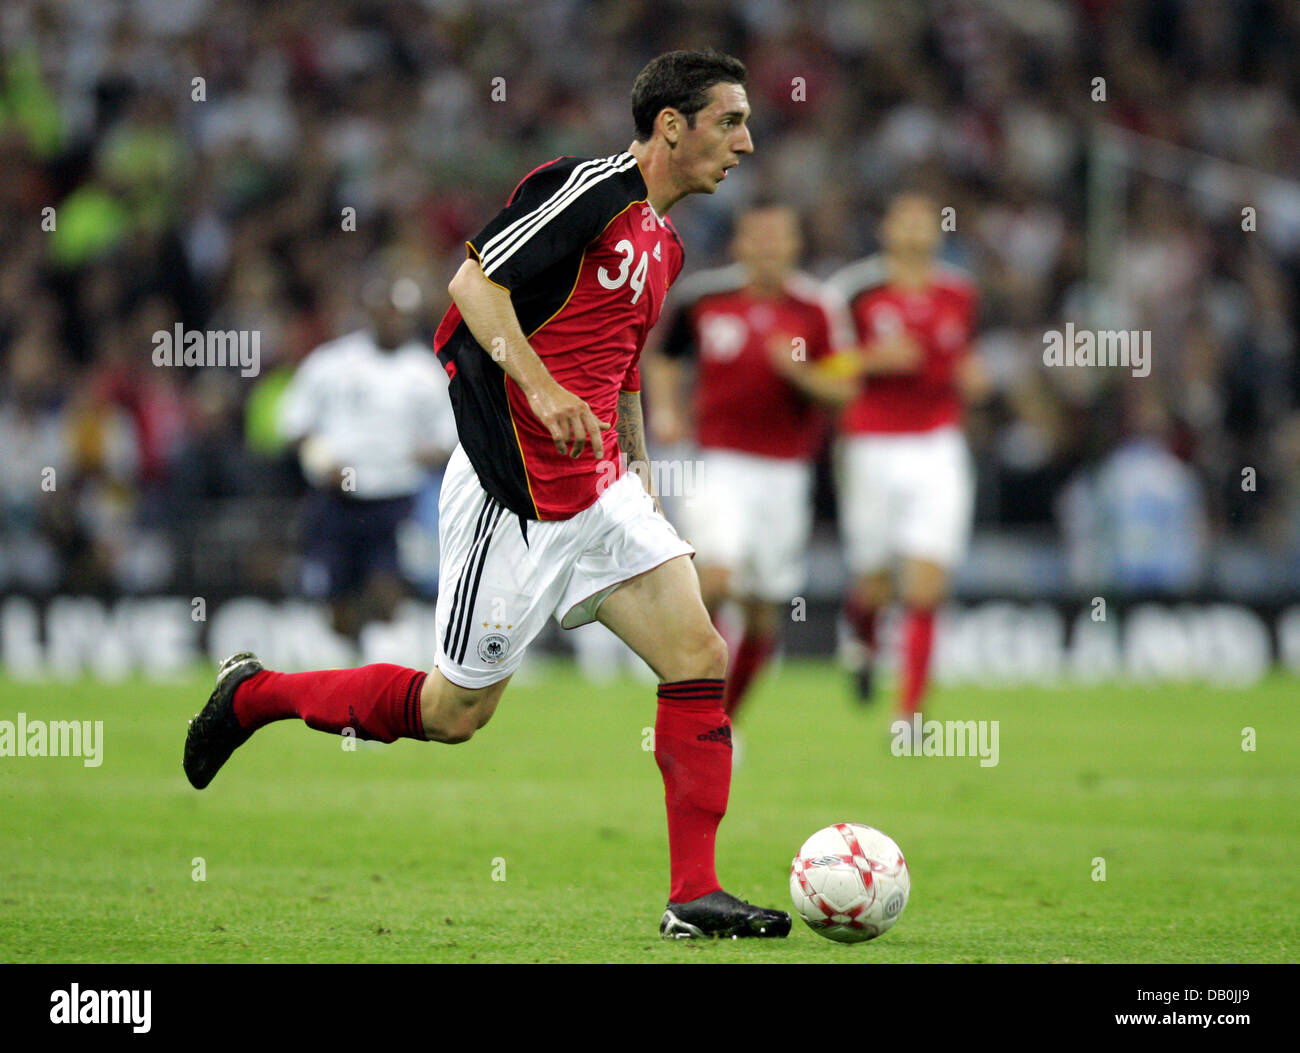 (dpa file) - Germany's Roberto Hilbert controls the ball during the international match England vs Germany at Wembley Stock Photo